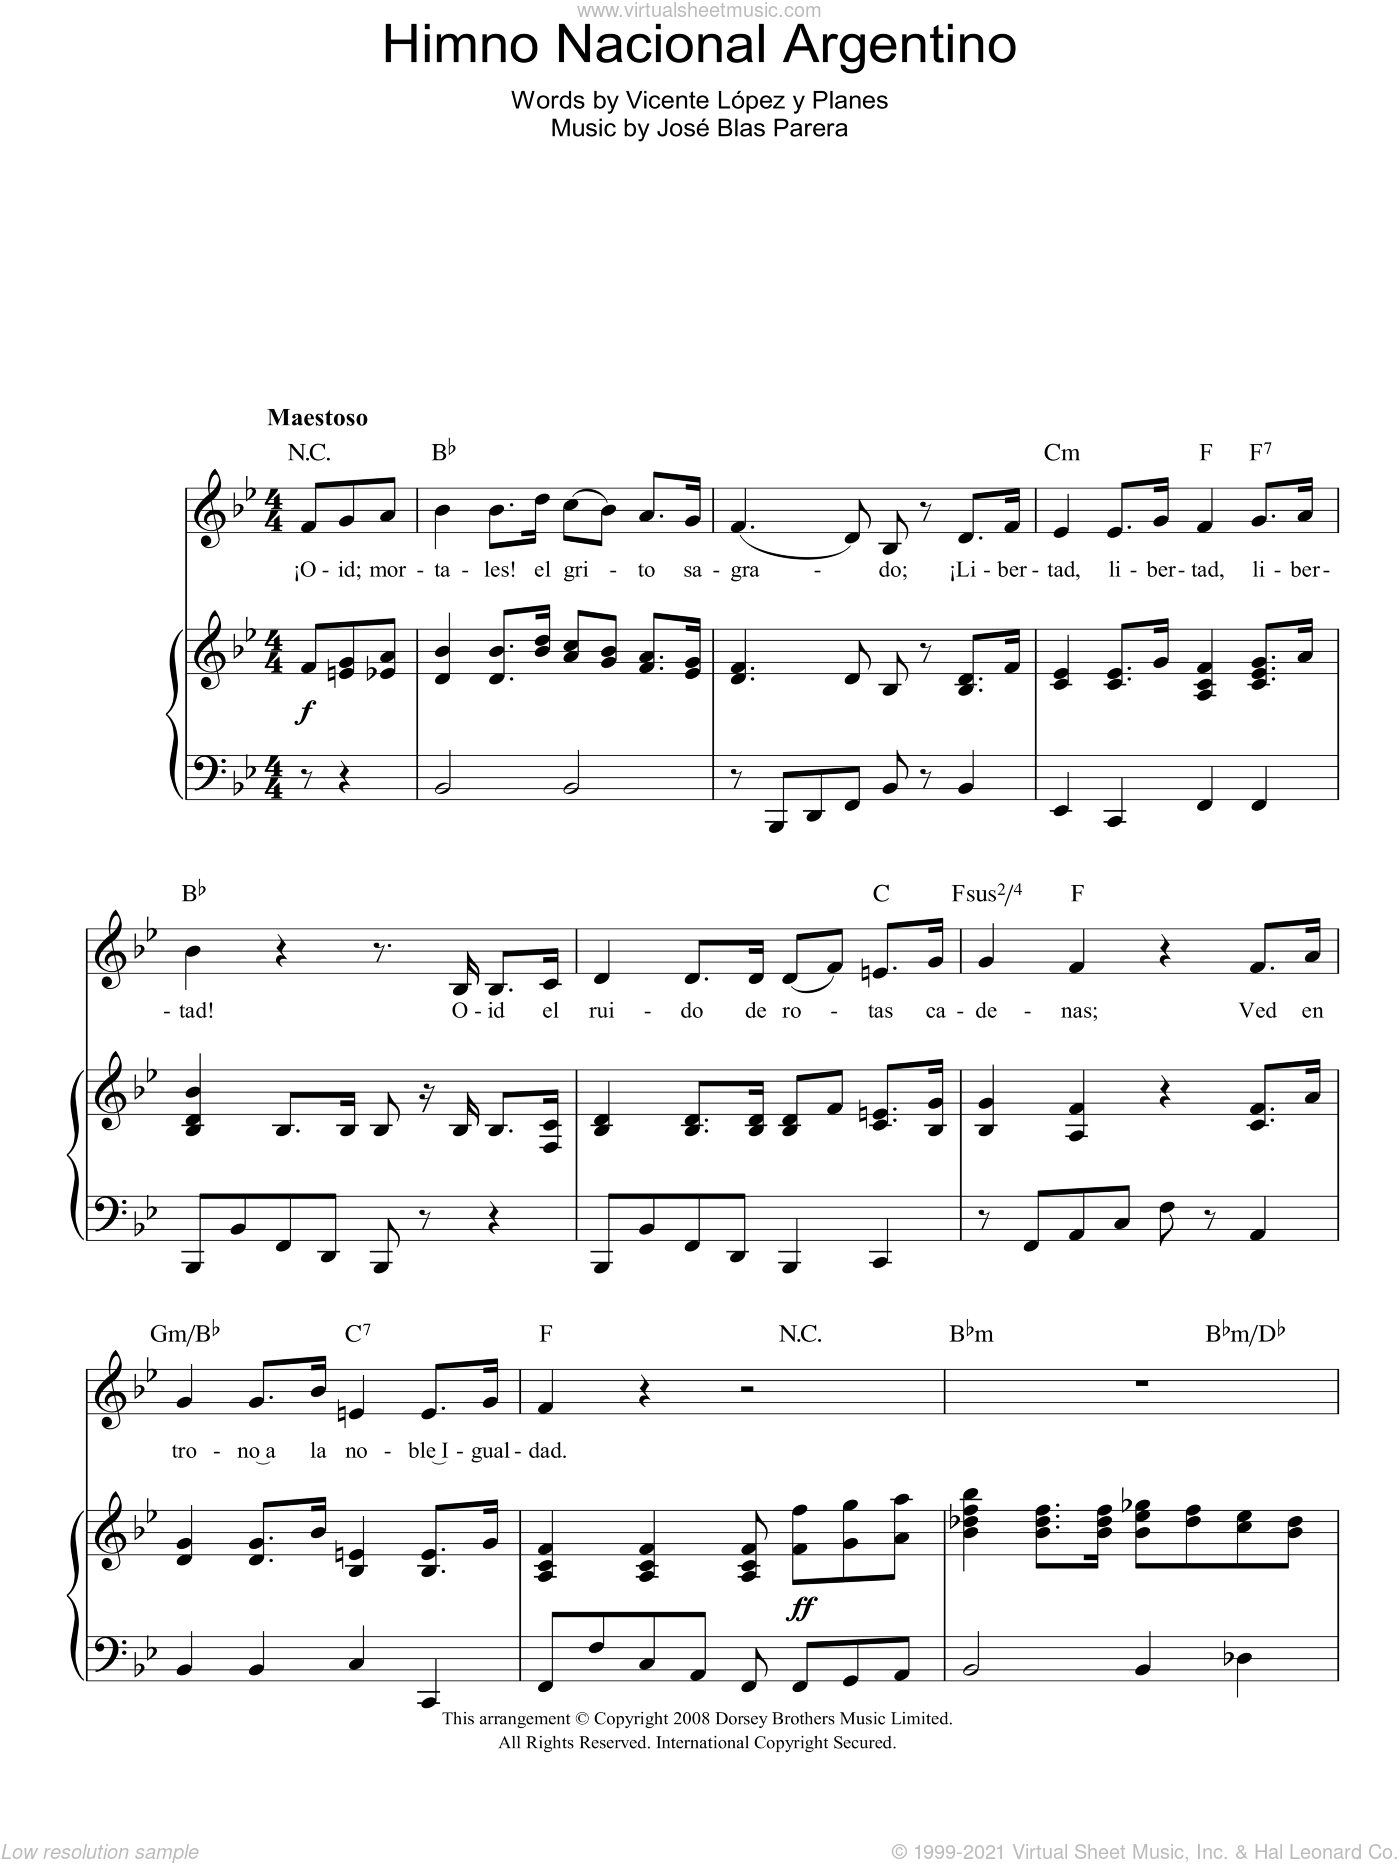 Himno Nacional Argentino (Argentinian National Anthem) sheet music for voice, piano or guitar by Vicente Lopez y Planes. Score Image Preview.